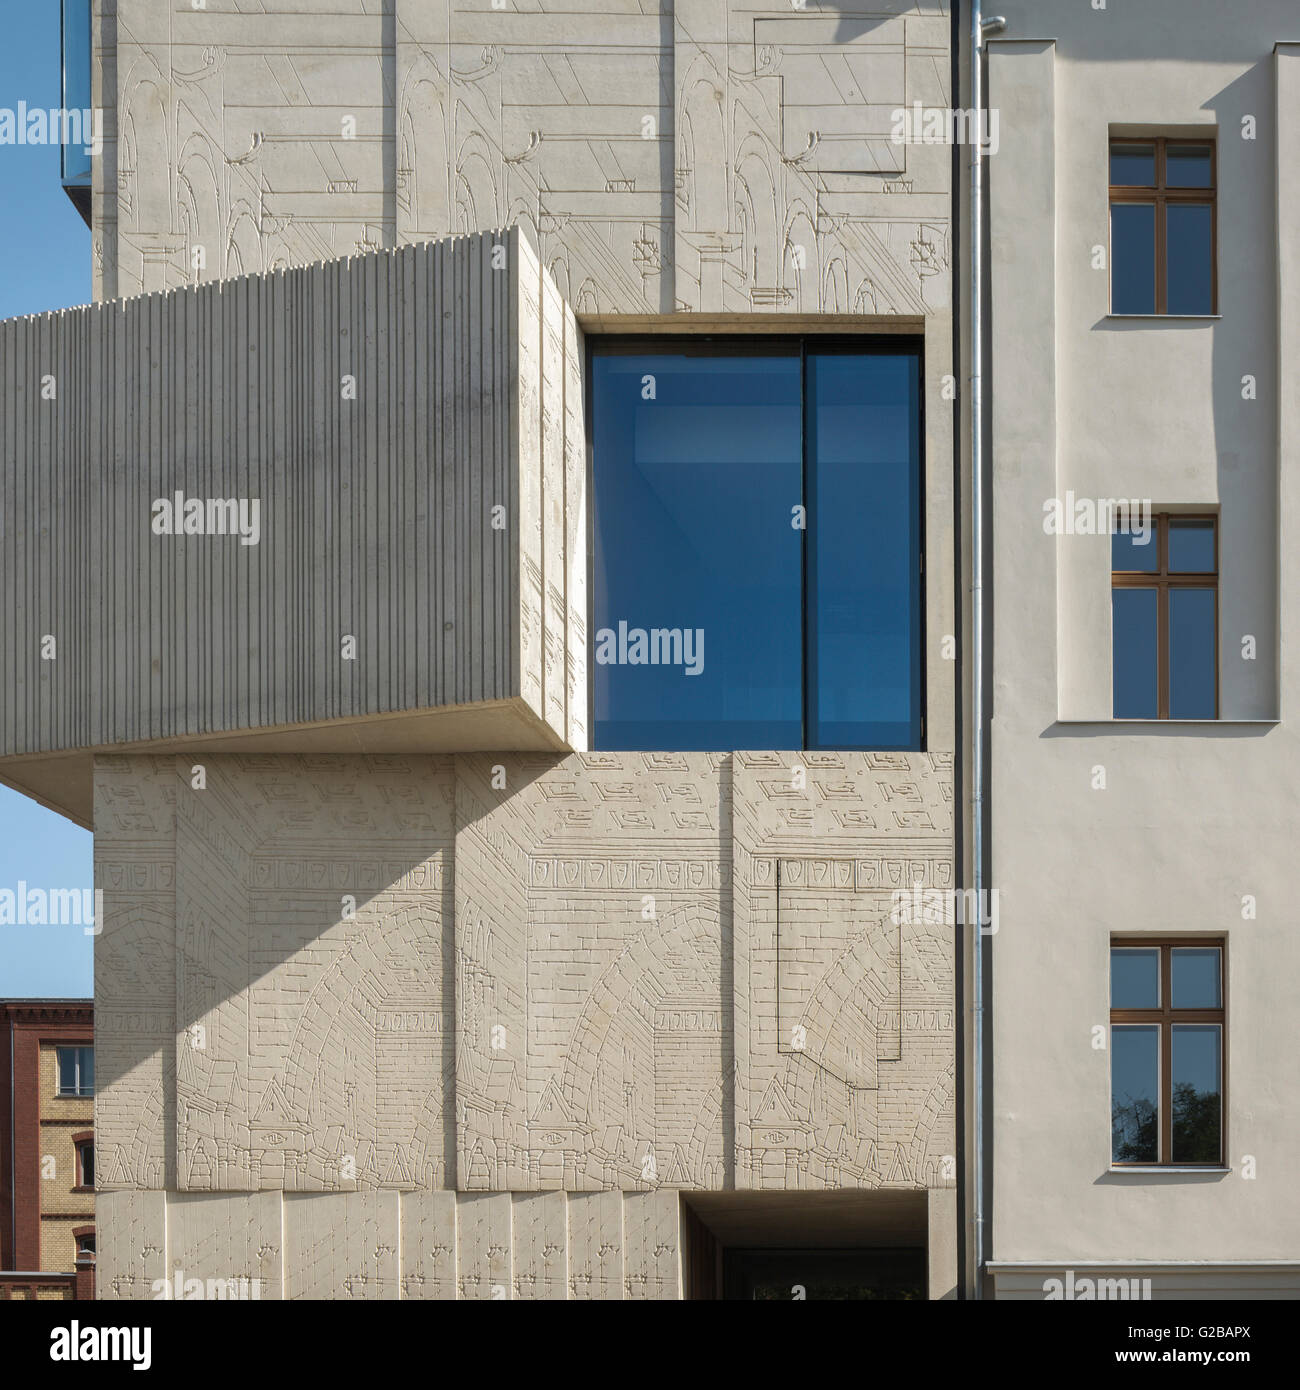 the museum for architectural drawing in berlin close up view of the